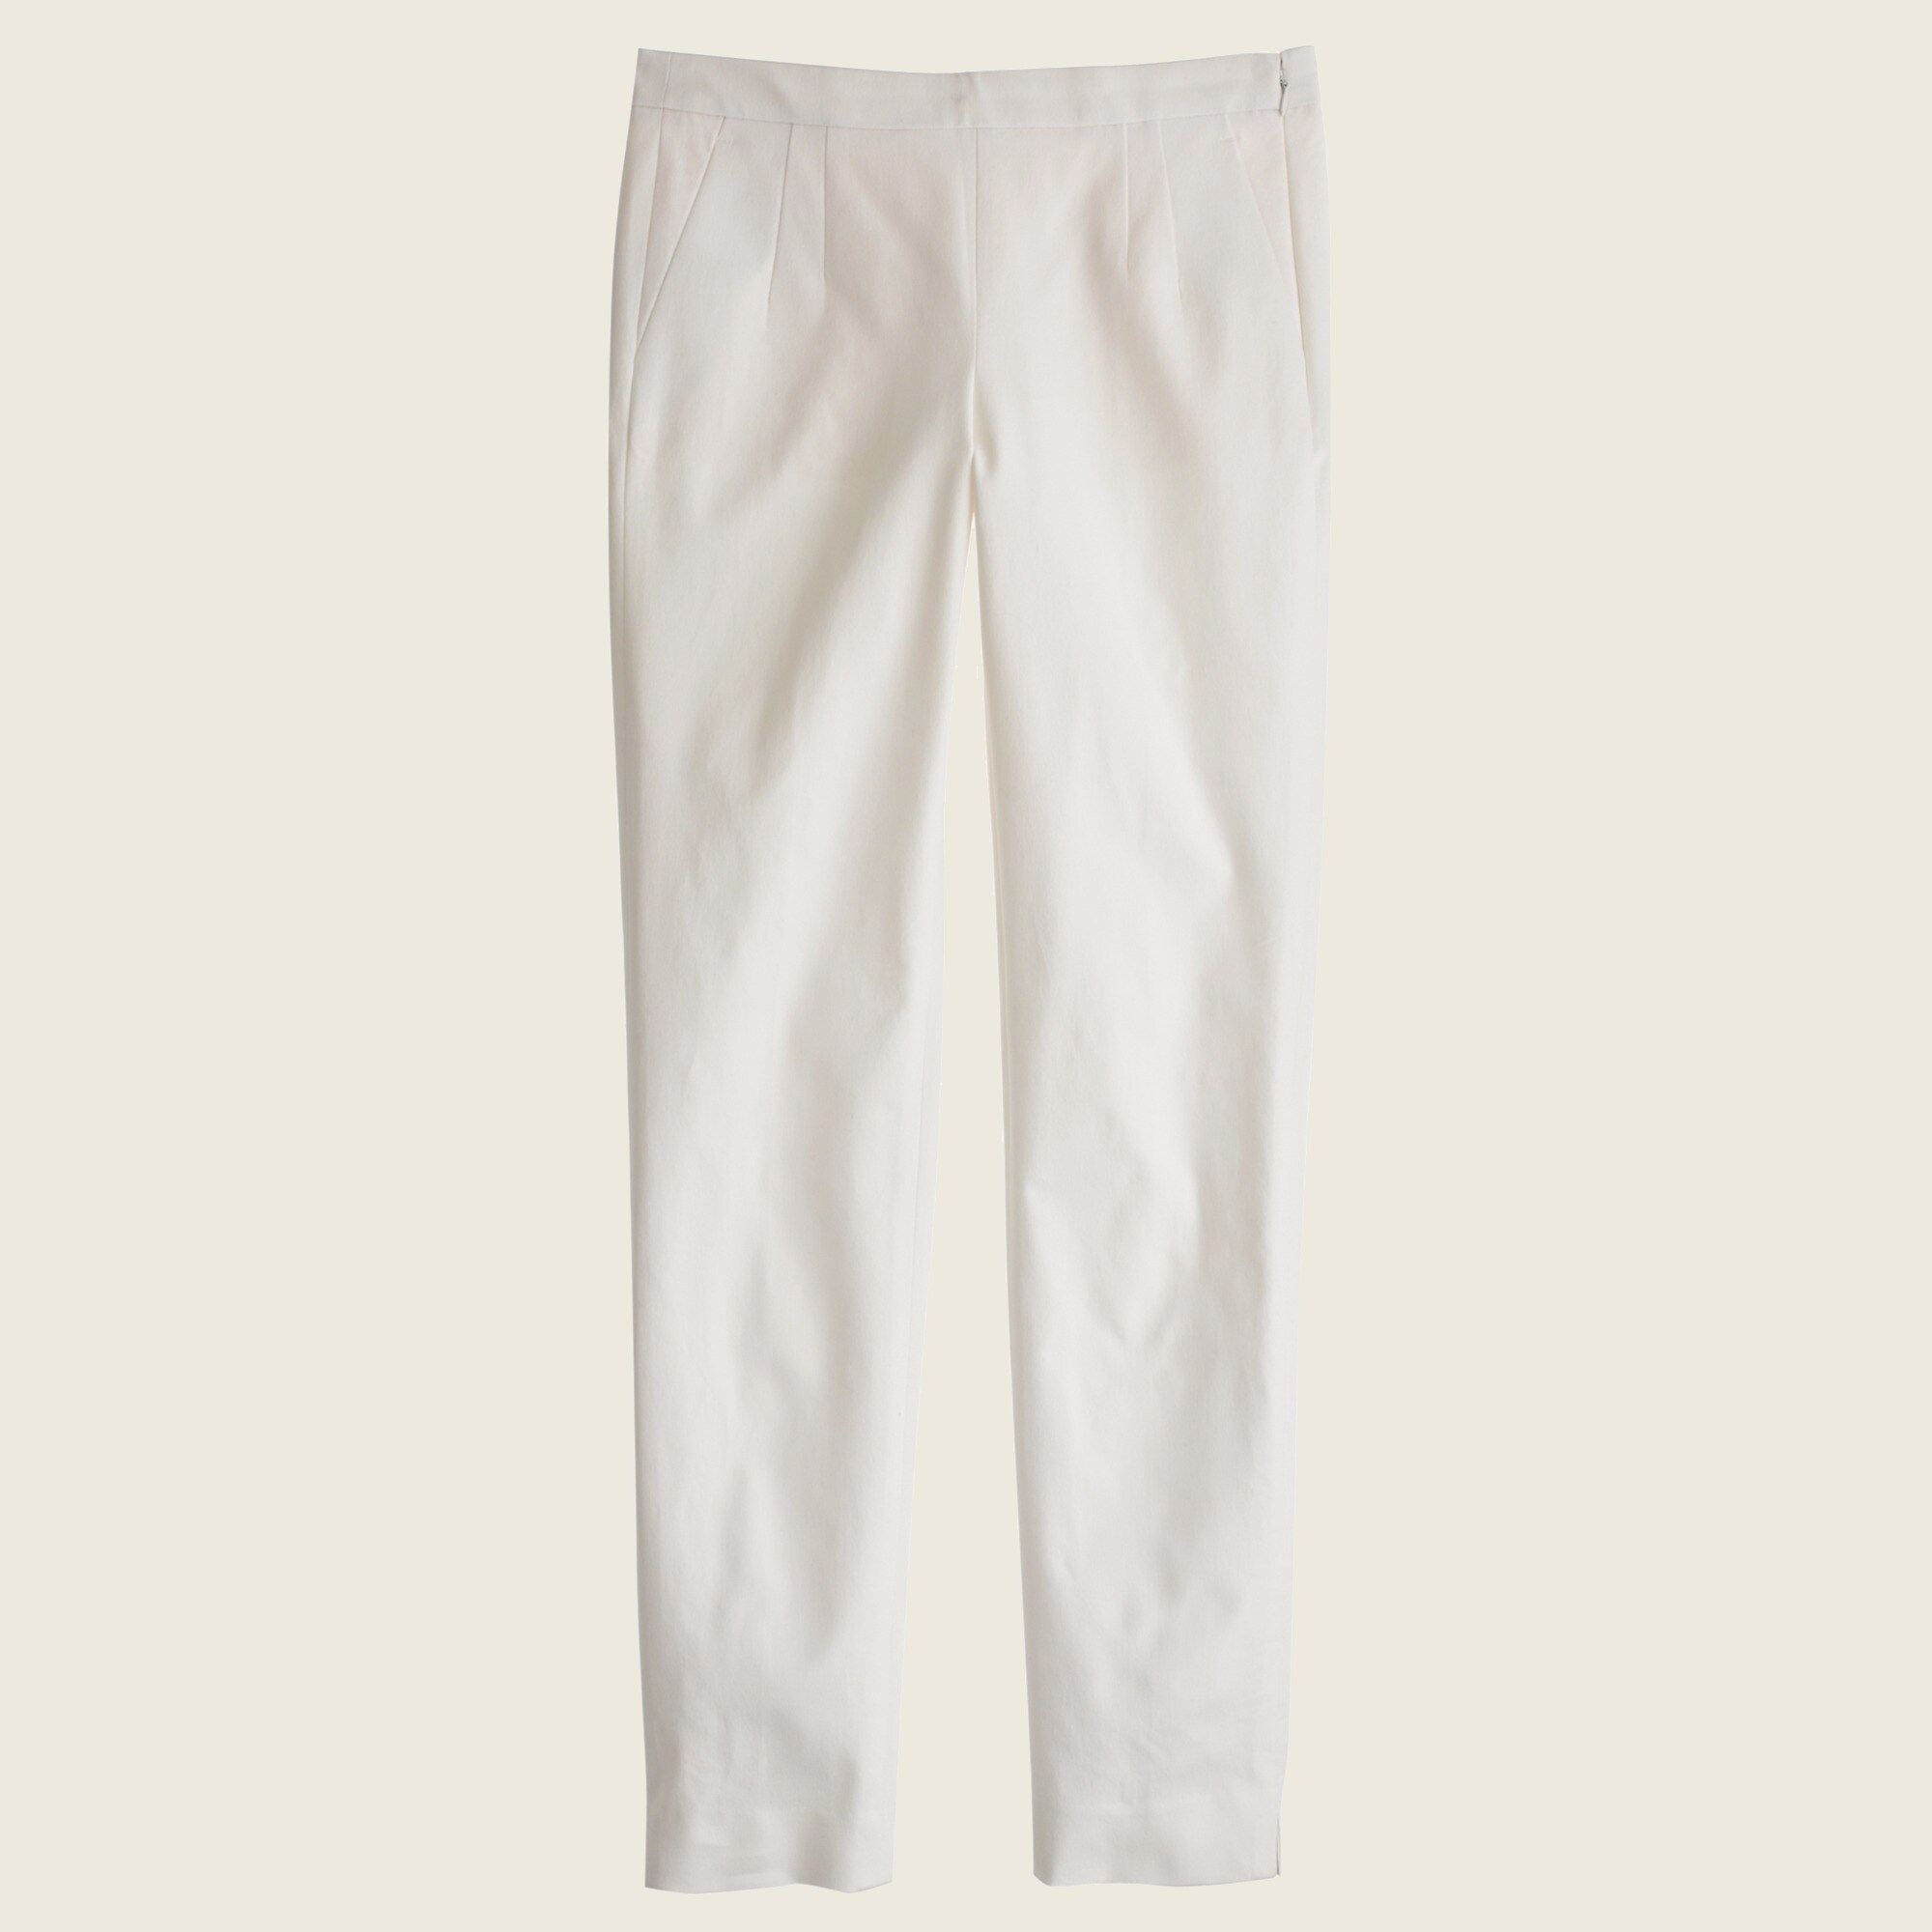 Tall Martie slim crop pant in stretch cotton with side zip